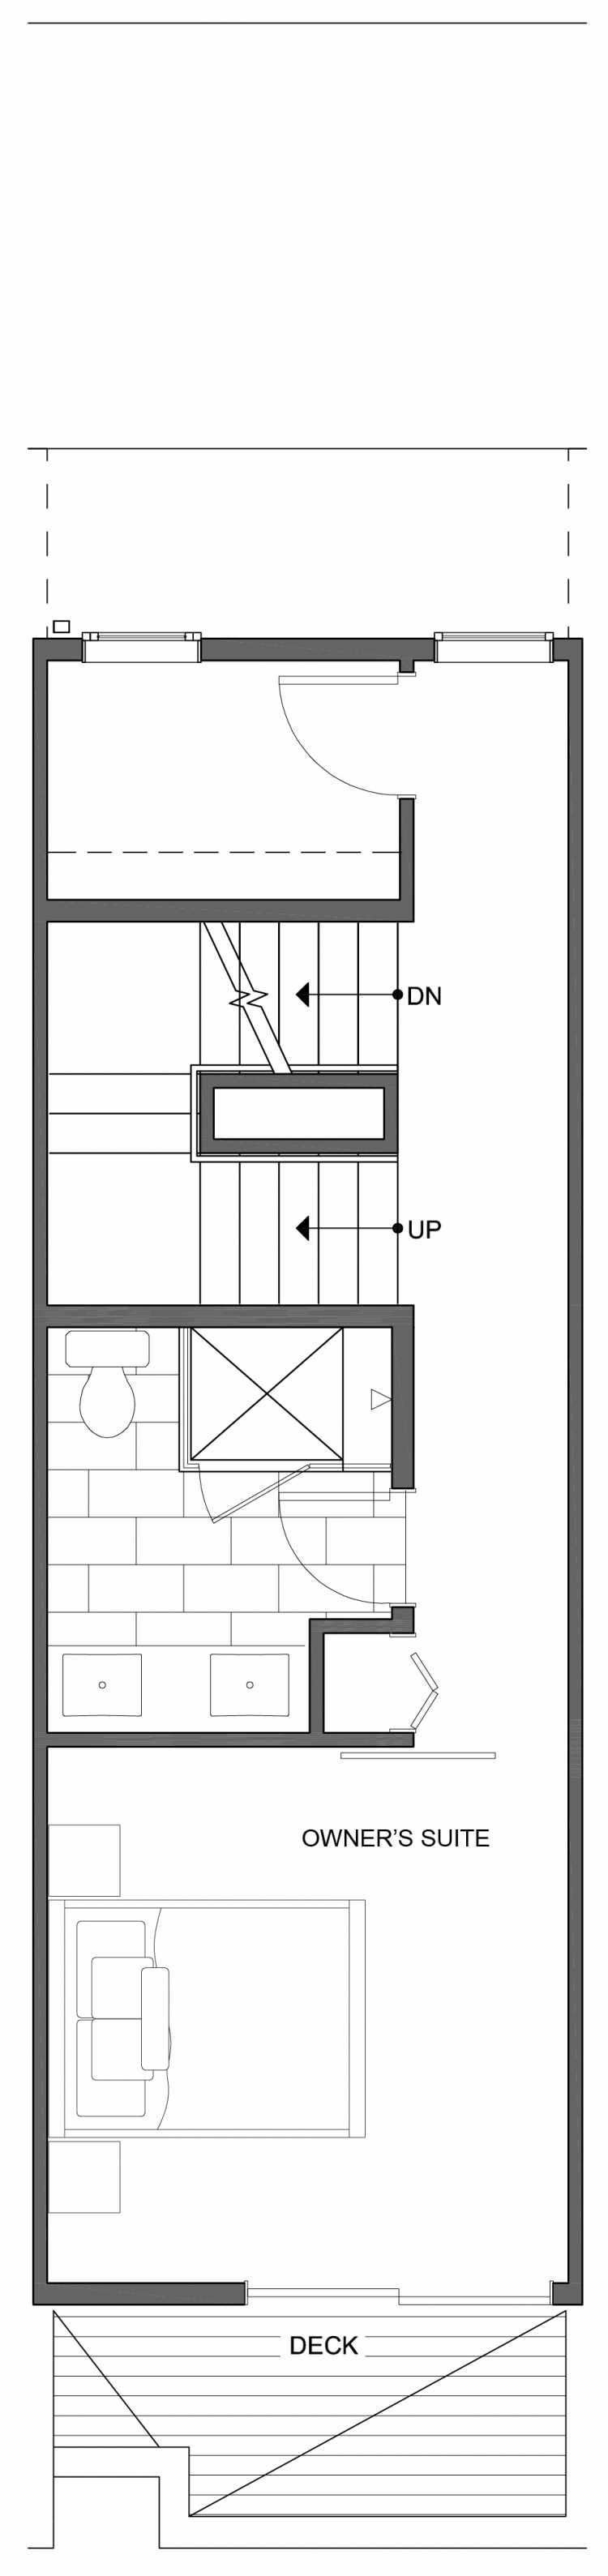 Fourth Floor Plan of 806B N 46th St, One of the Nino 15 East Townhomes by Isola Homes